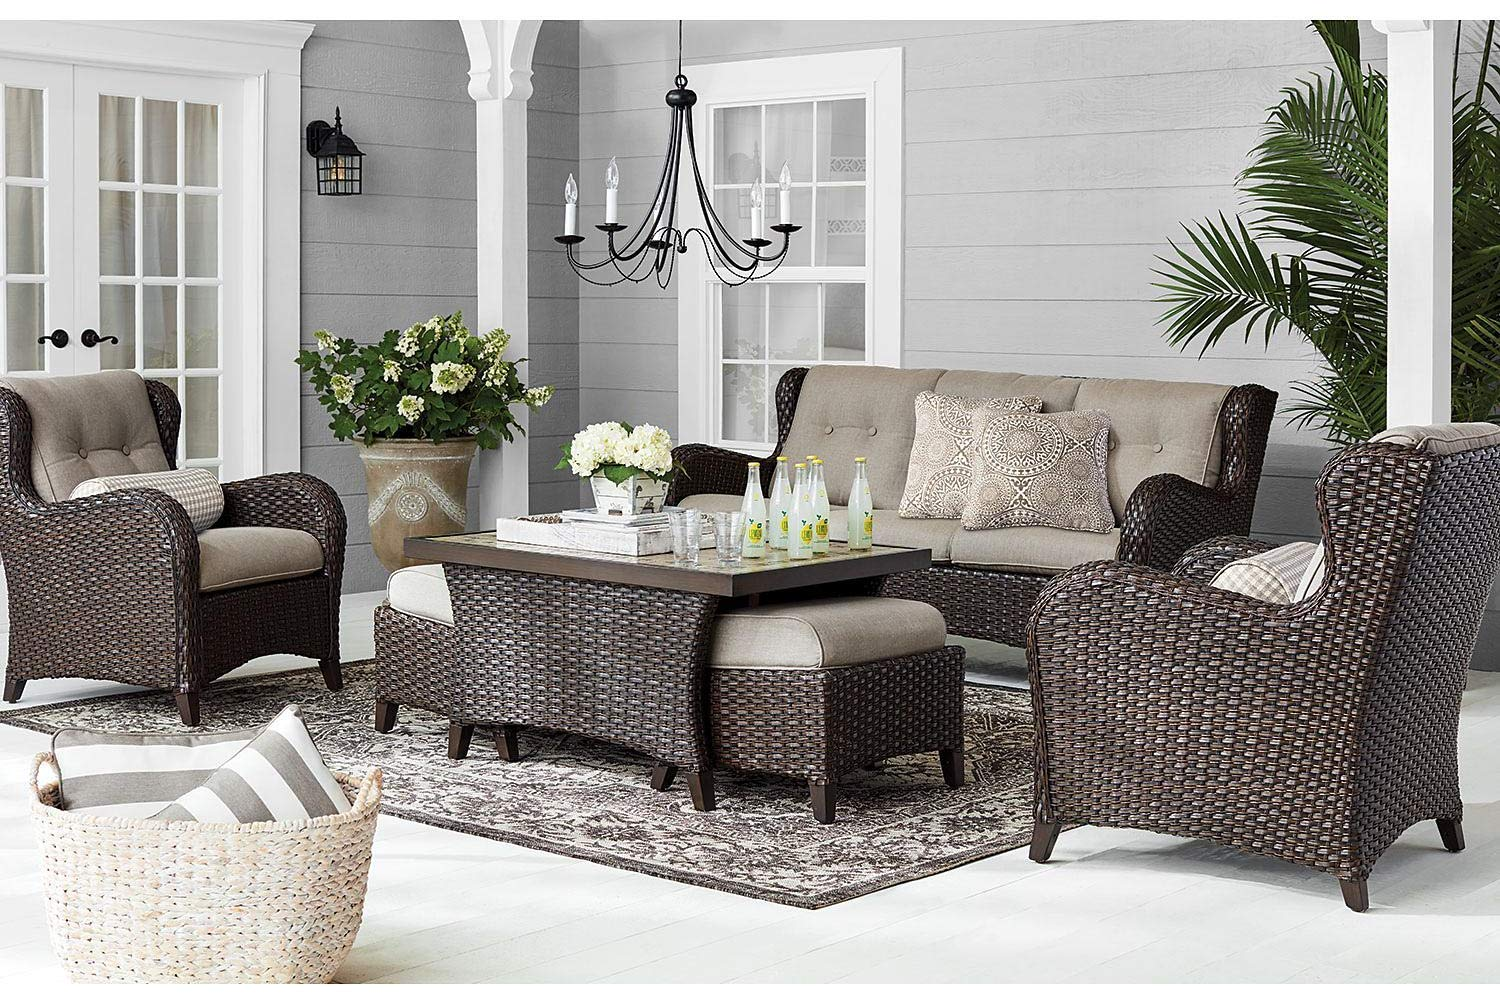 Member's Mark Agio Heritage 6-Piece Deep Seating Patio Set with Sunbrella Fabric - Shale